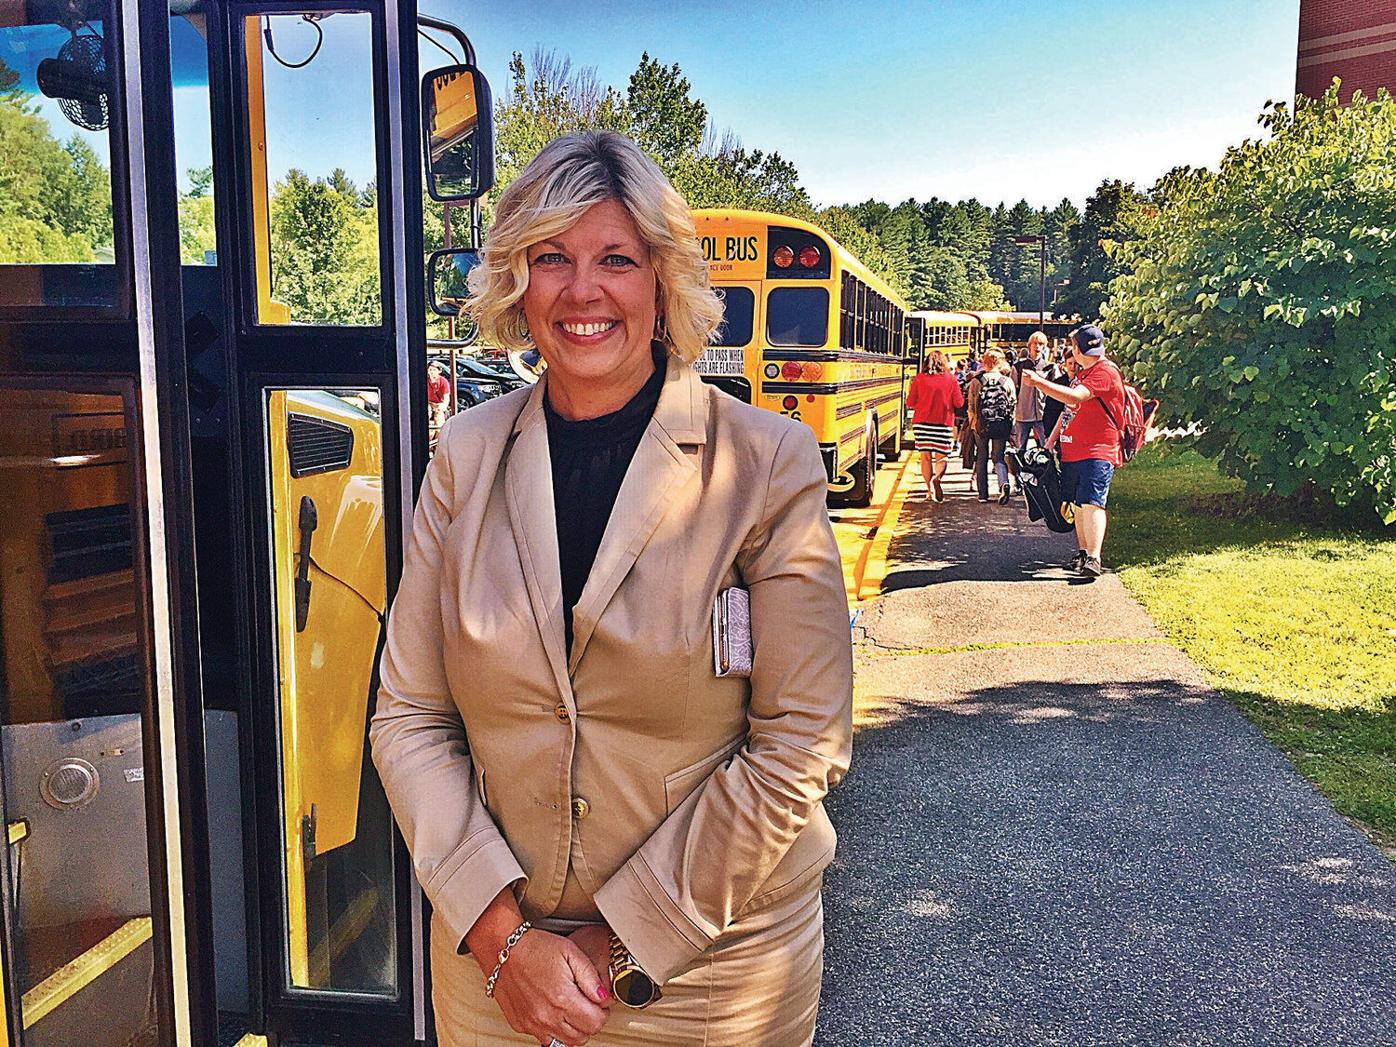 New Southern Berkshire Regional superintendent scores high marks while facing district challenges